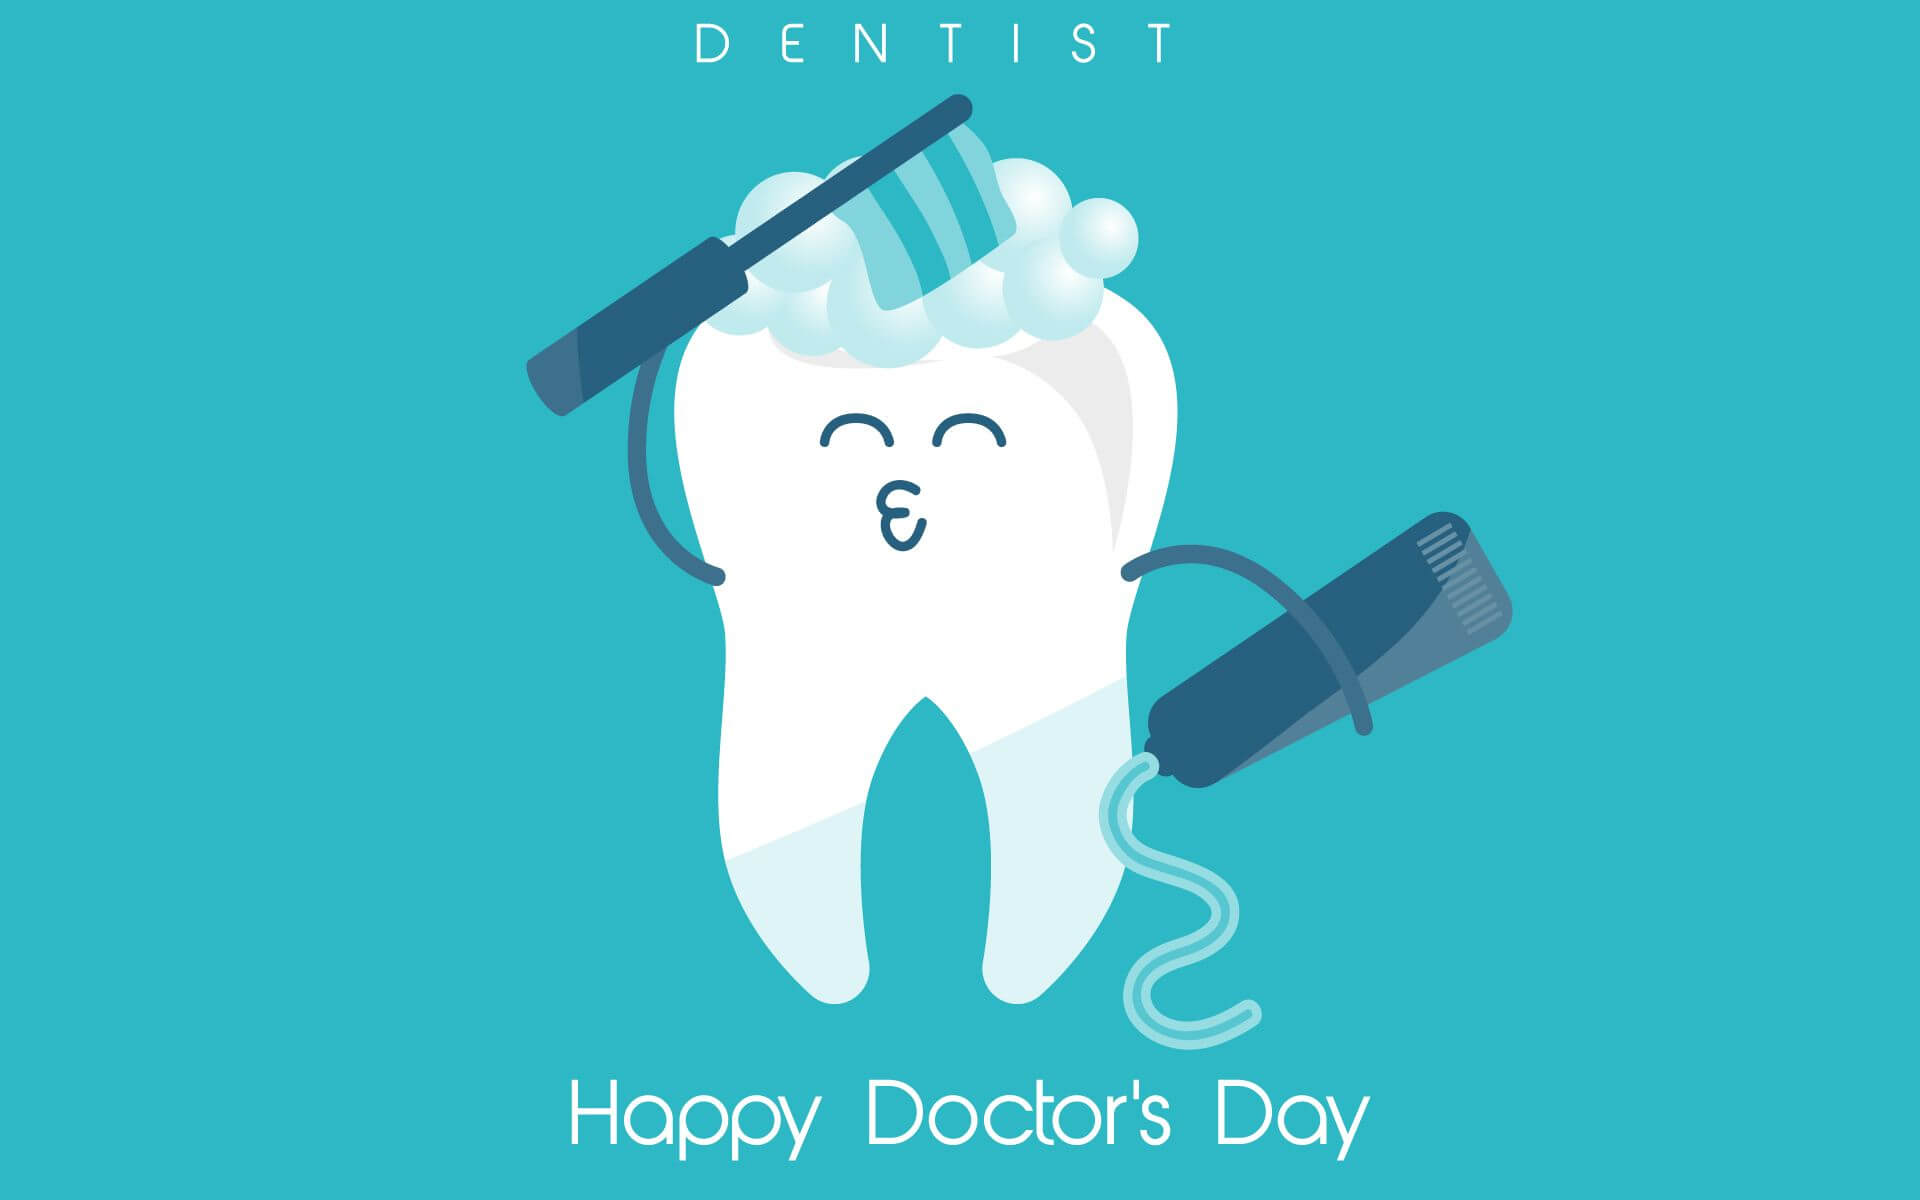 happy doctors day wishes greetings dentist brush hd wallpaper